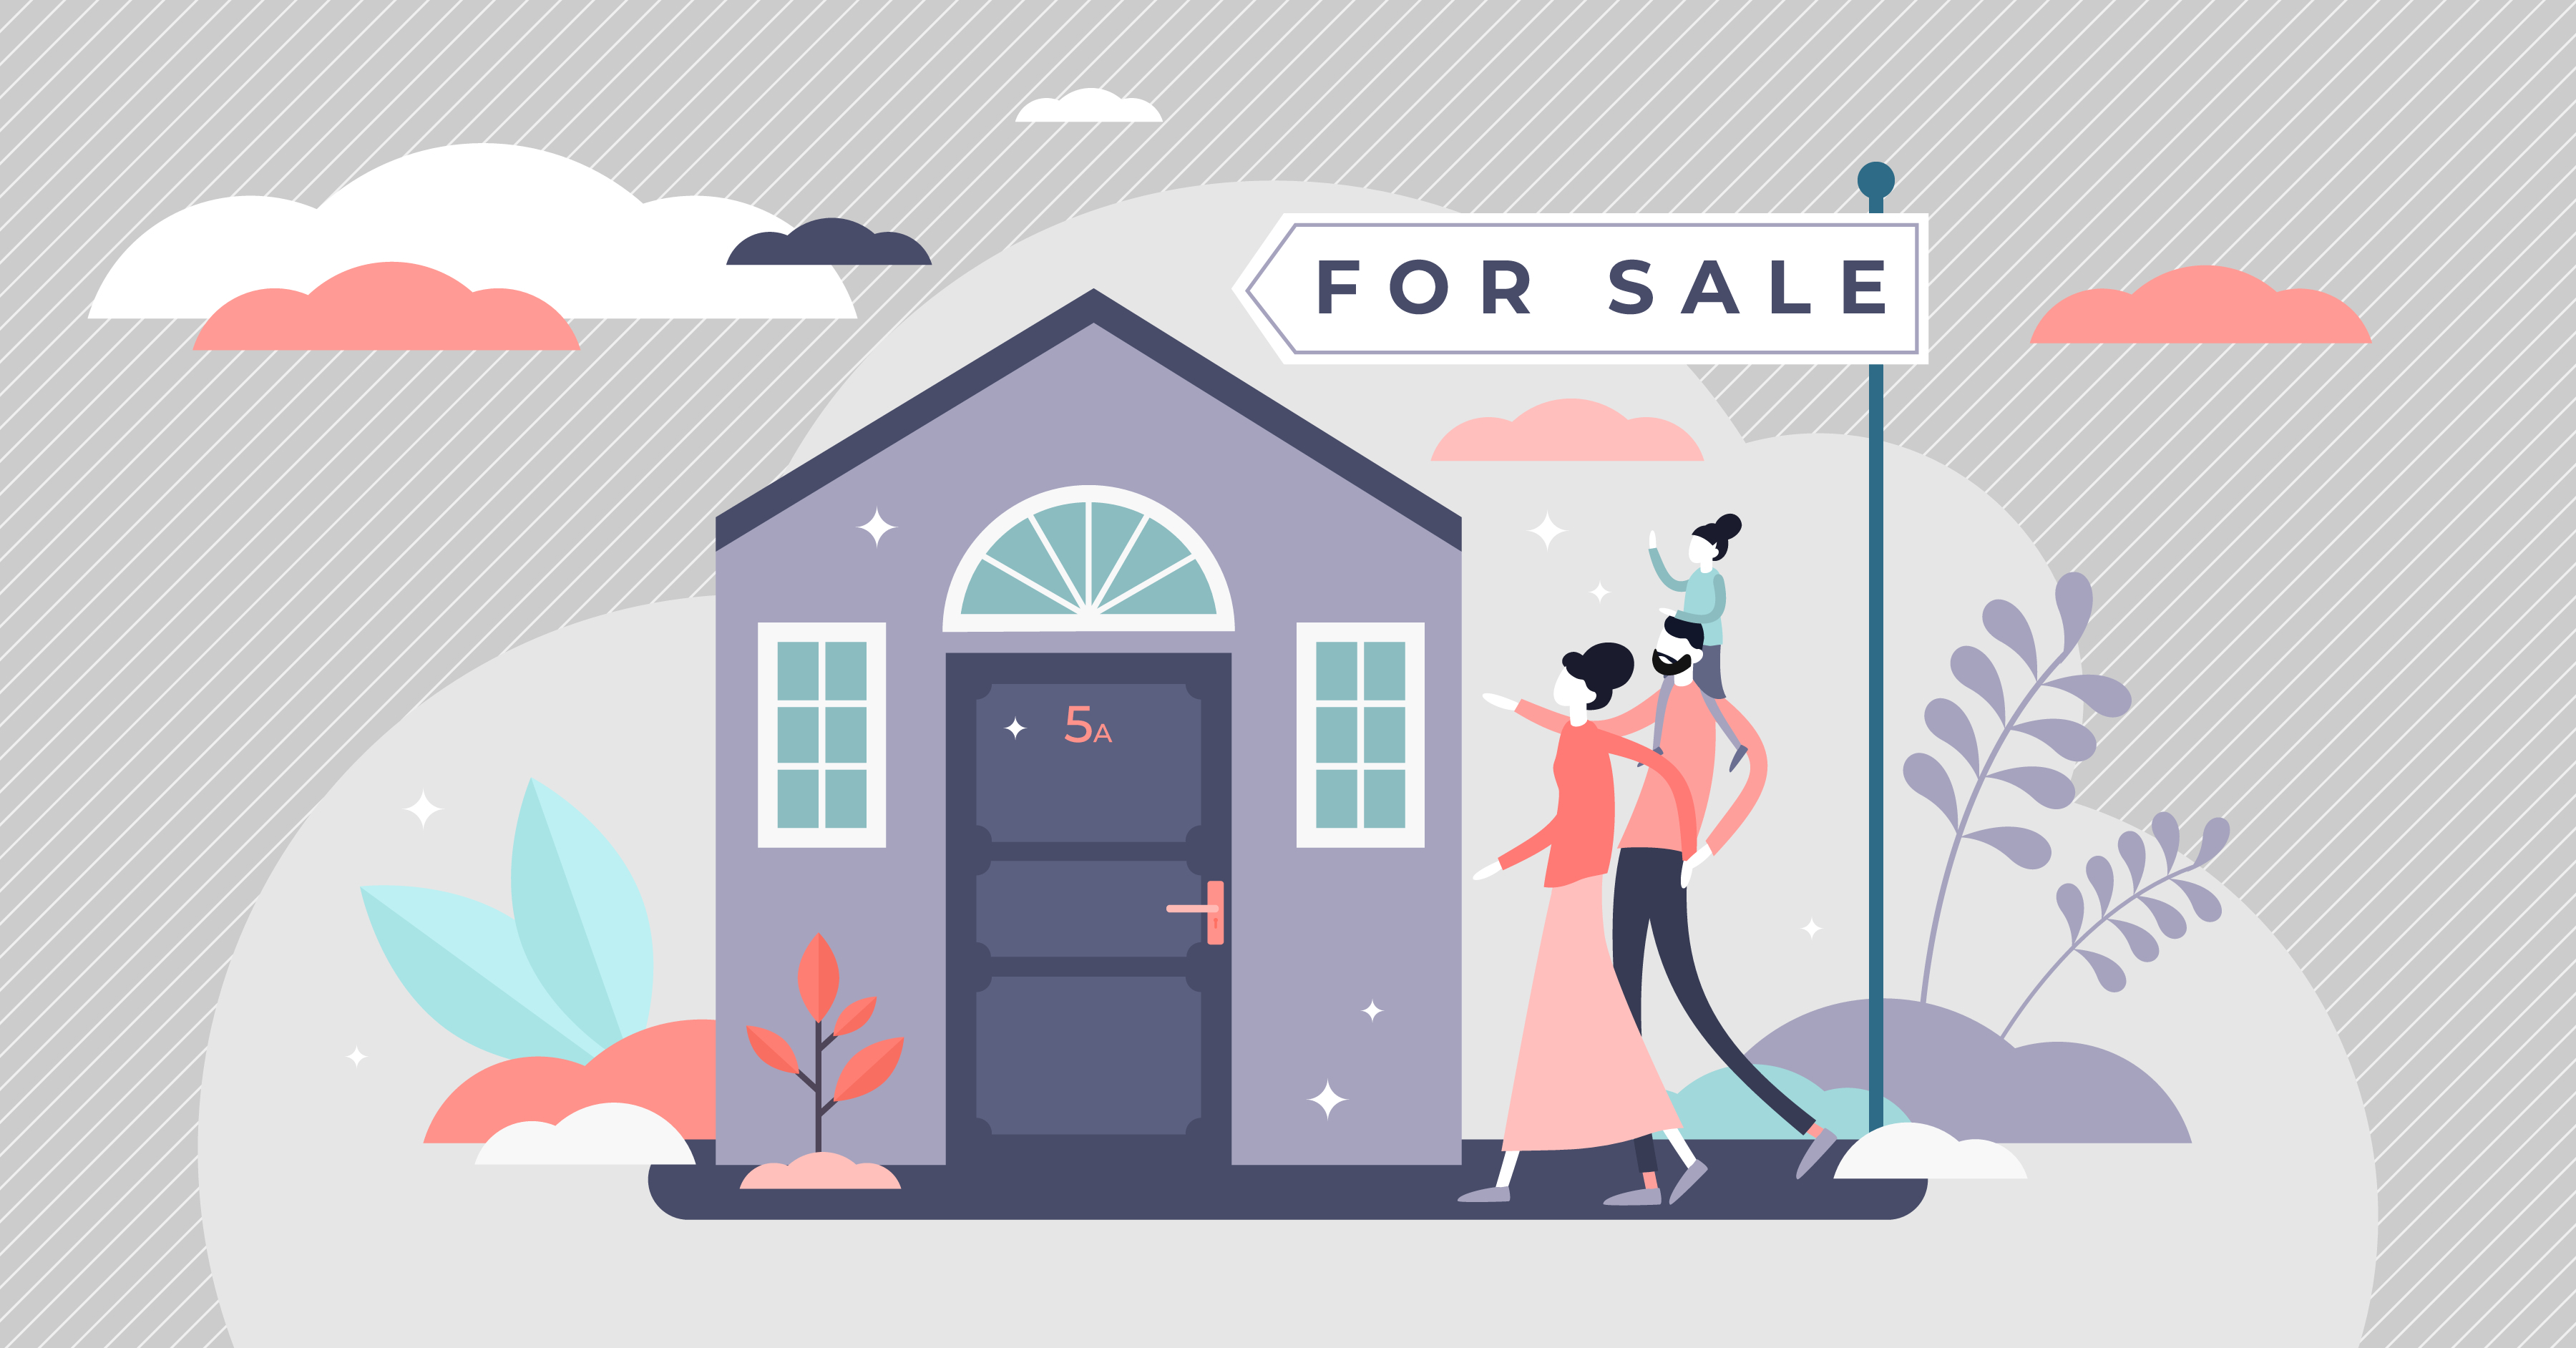 Buying a new house. Real estate agent giving a home keychain to a buyer. Modern flat style vector illustration isolated on white background.